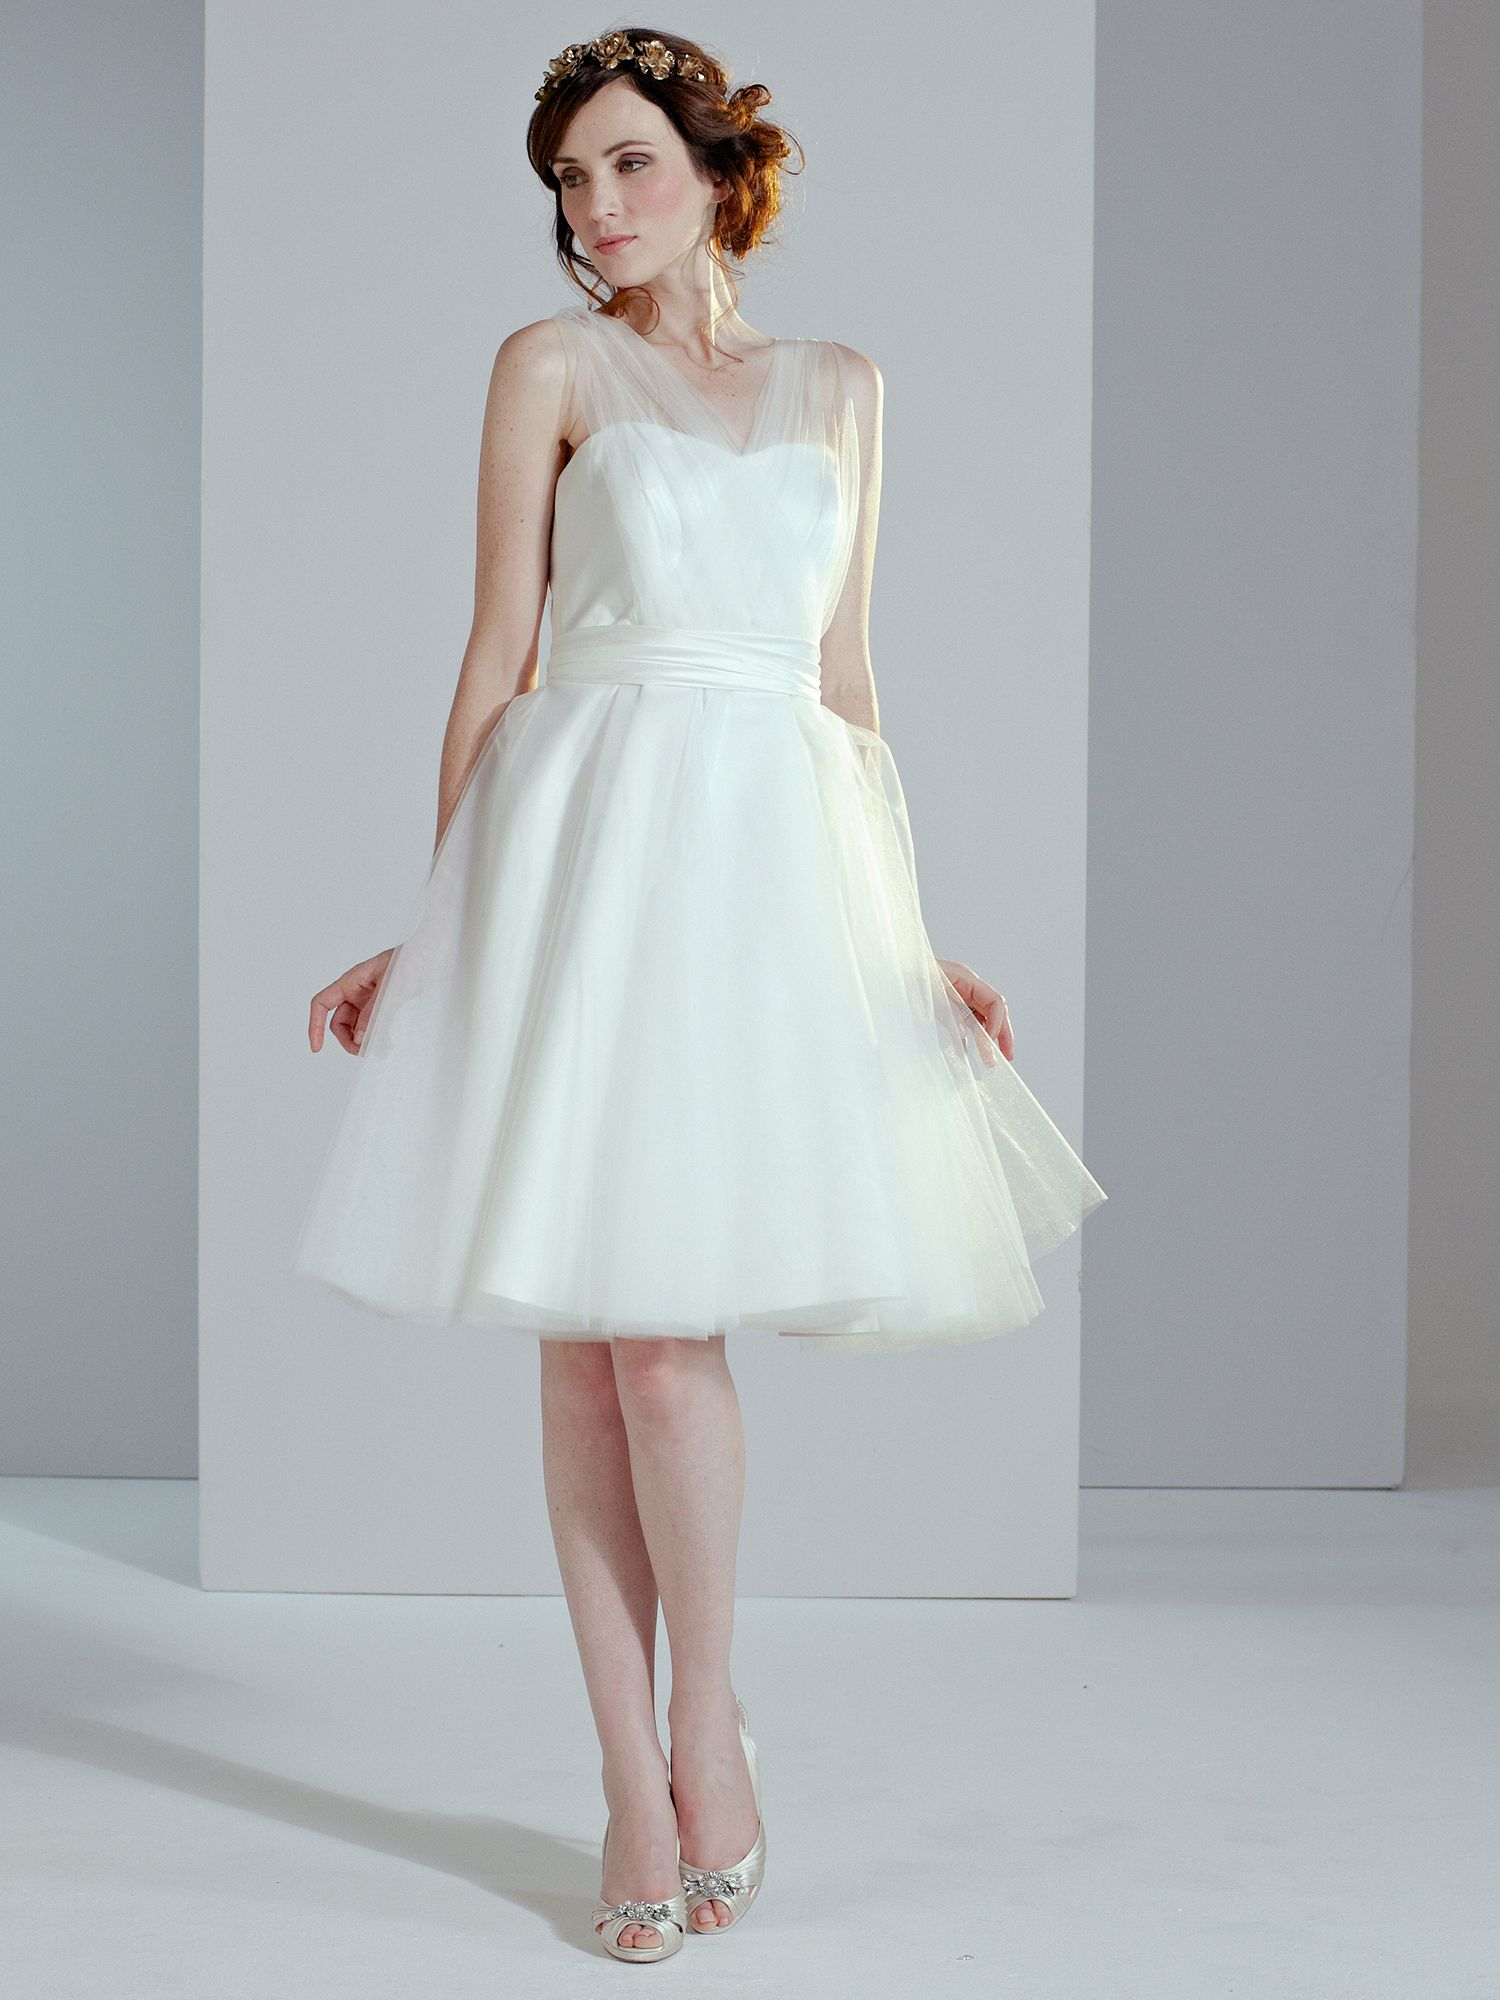 Sally tulle wedding dress